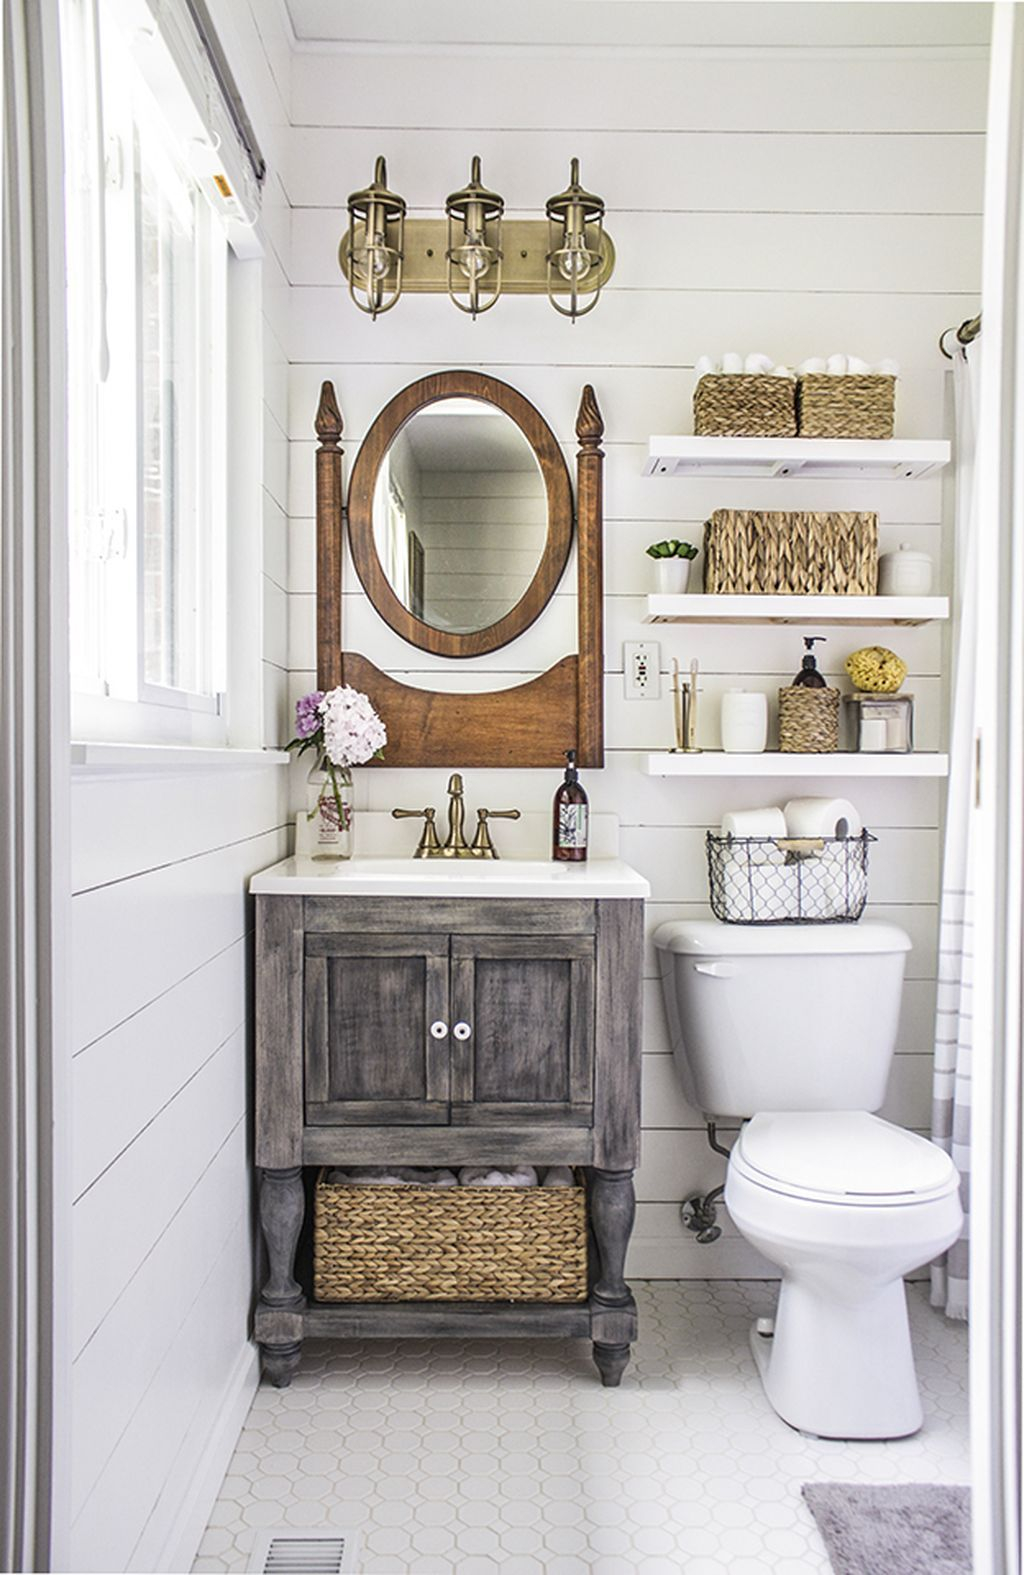 Inspiring Rustic Bathroom Vanity Remodel Ideas 16